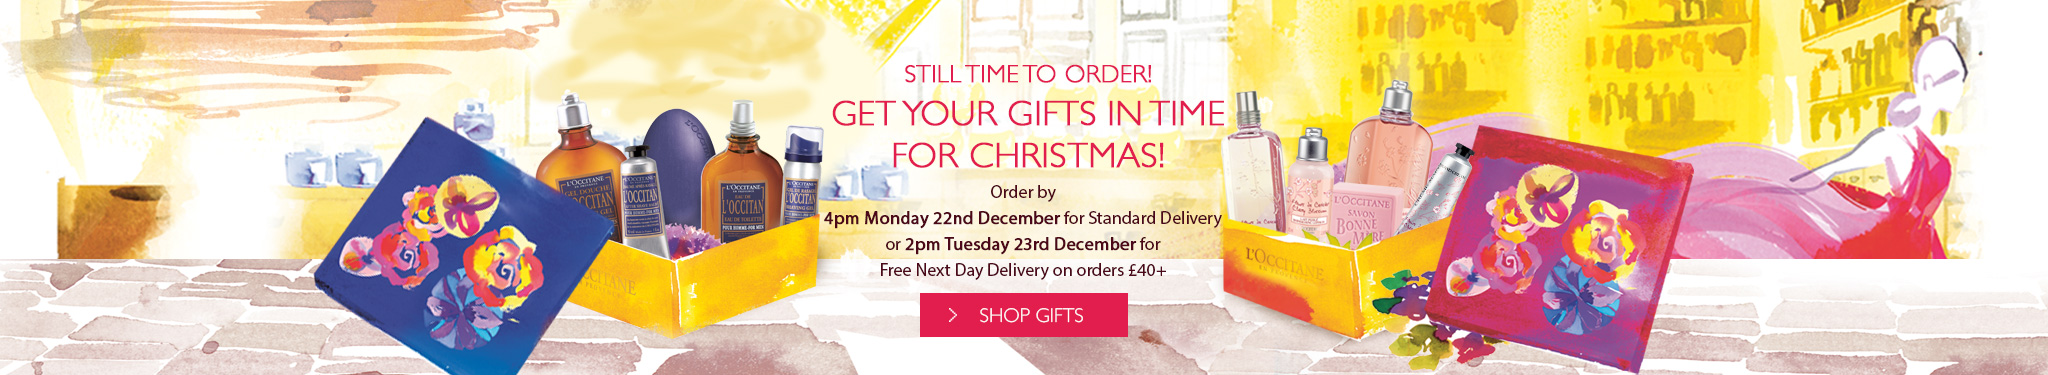 Get Your Gifts in Time for Christmas